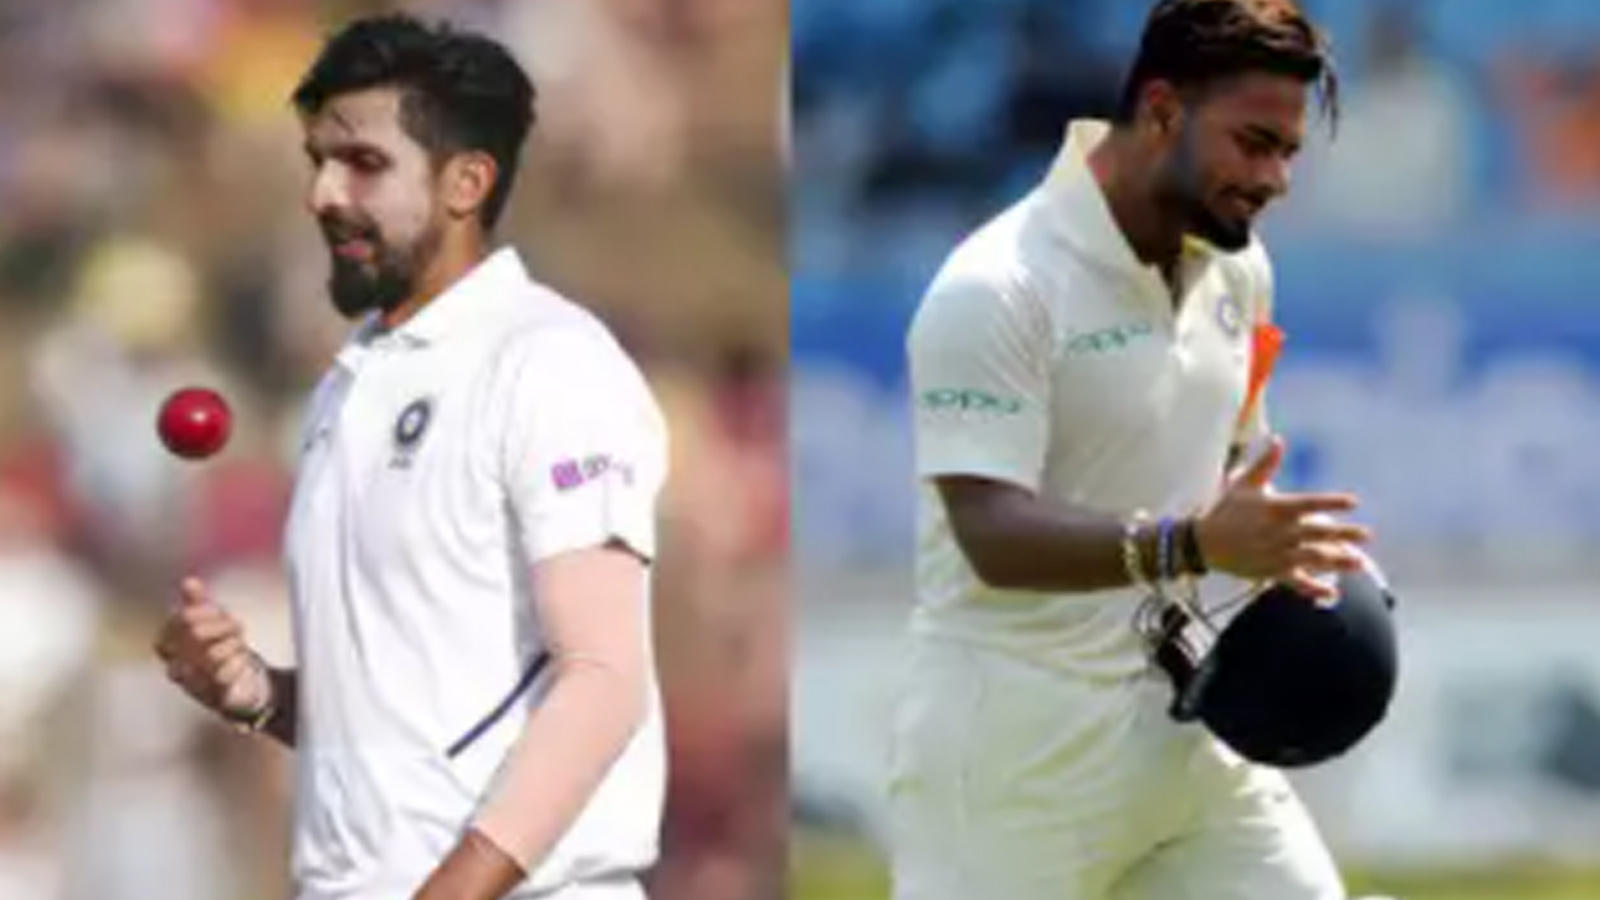 ind-vs-aus-nca-asks-bcci-selectors-to-take-final-call-on-ishant-pant